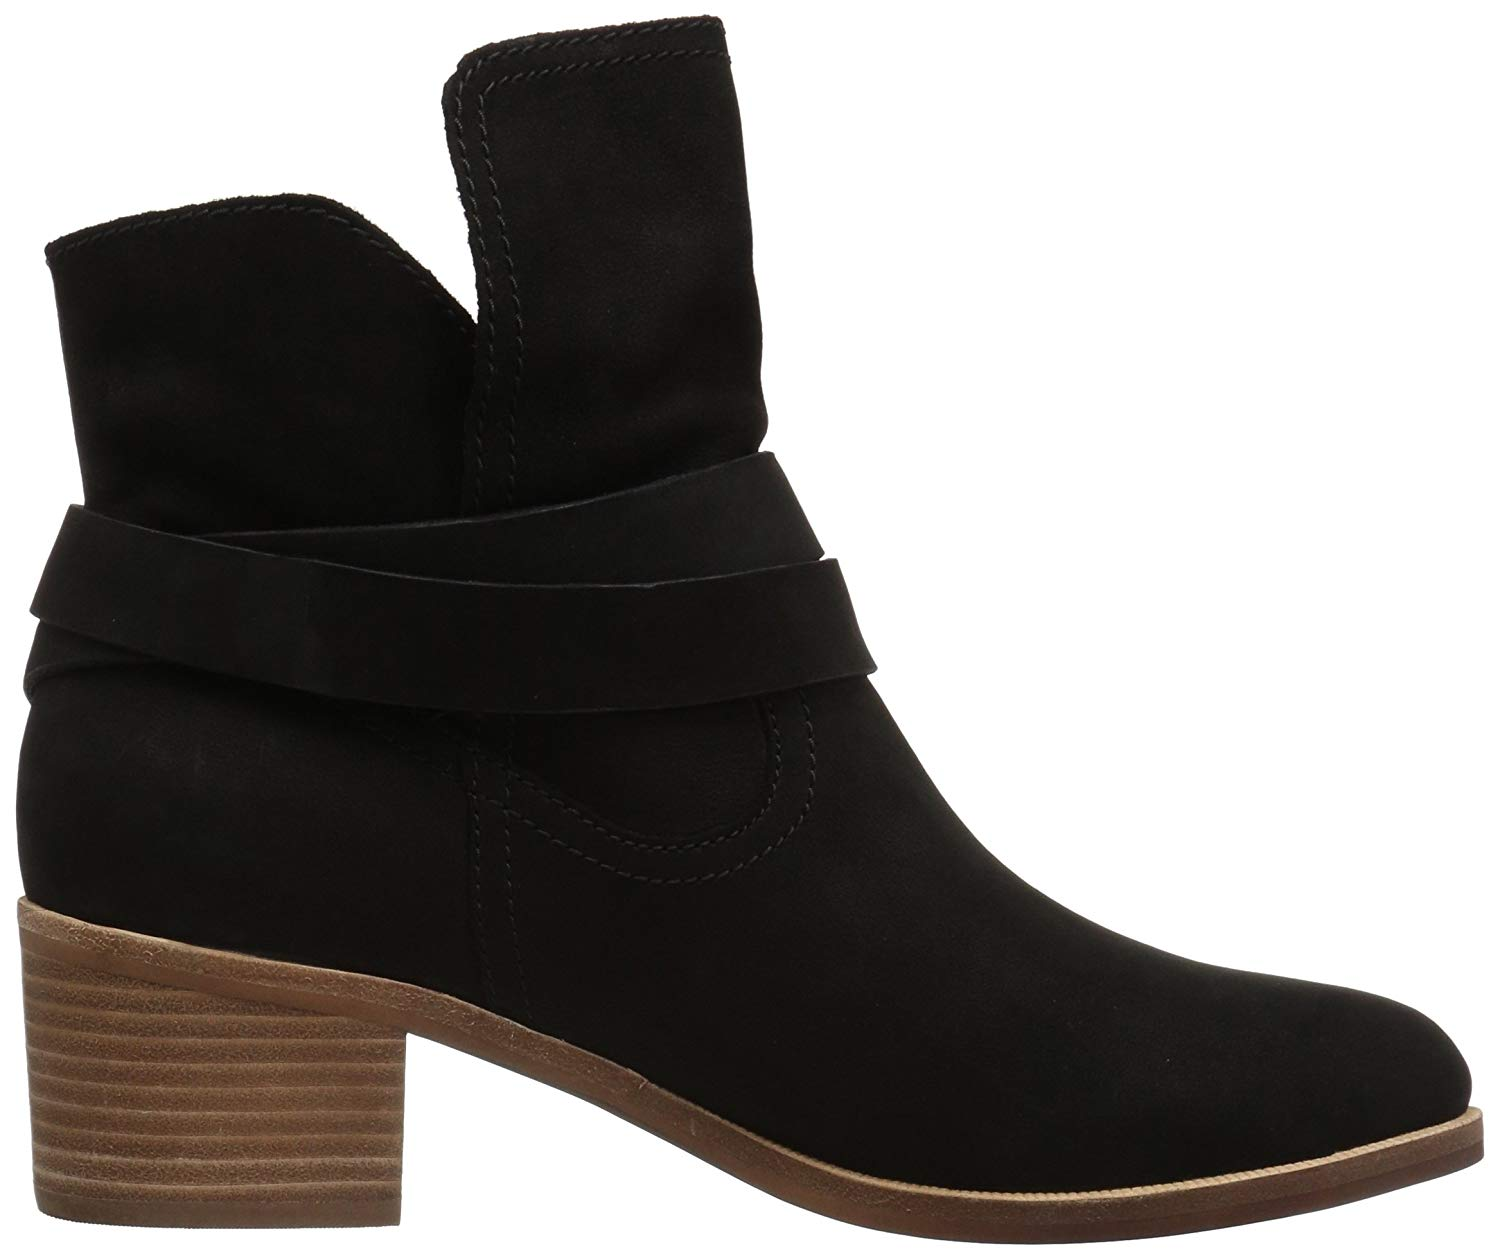 d38c65274b1 Ugg Australia Womens Elora Leather Almond Toe Ankle Fashion, ,